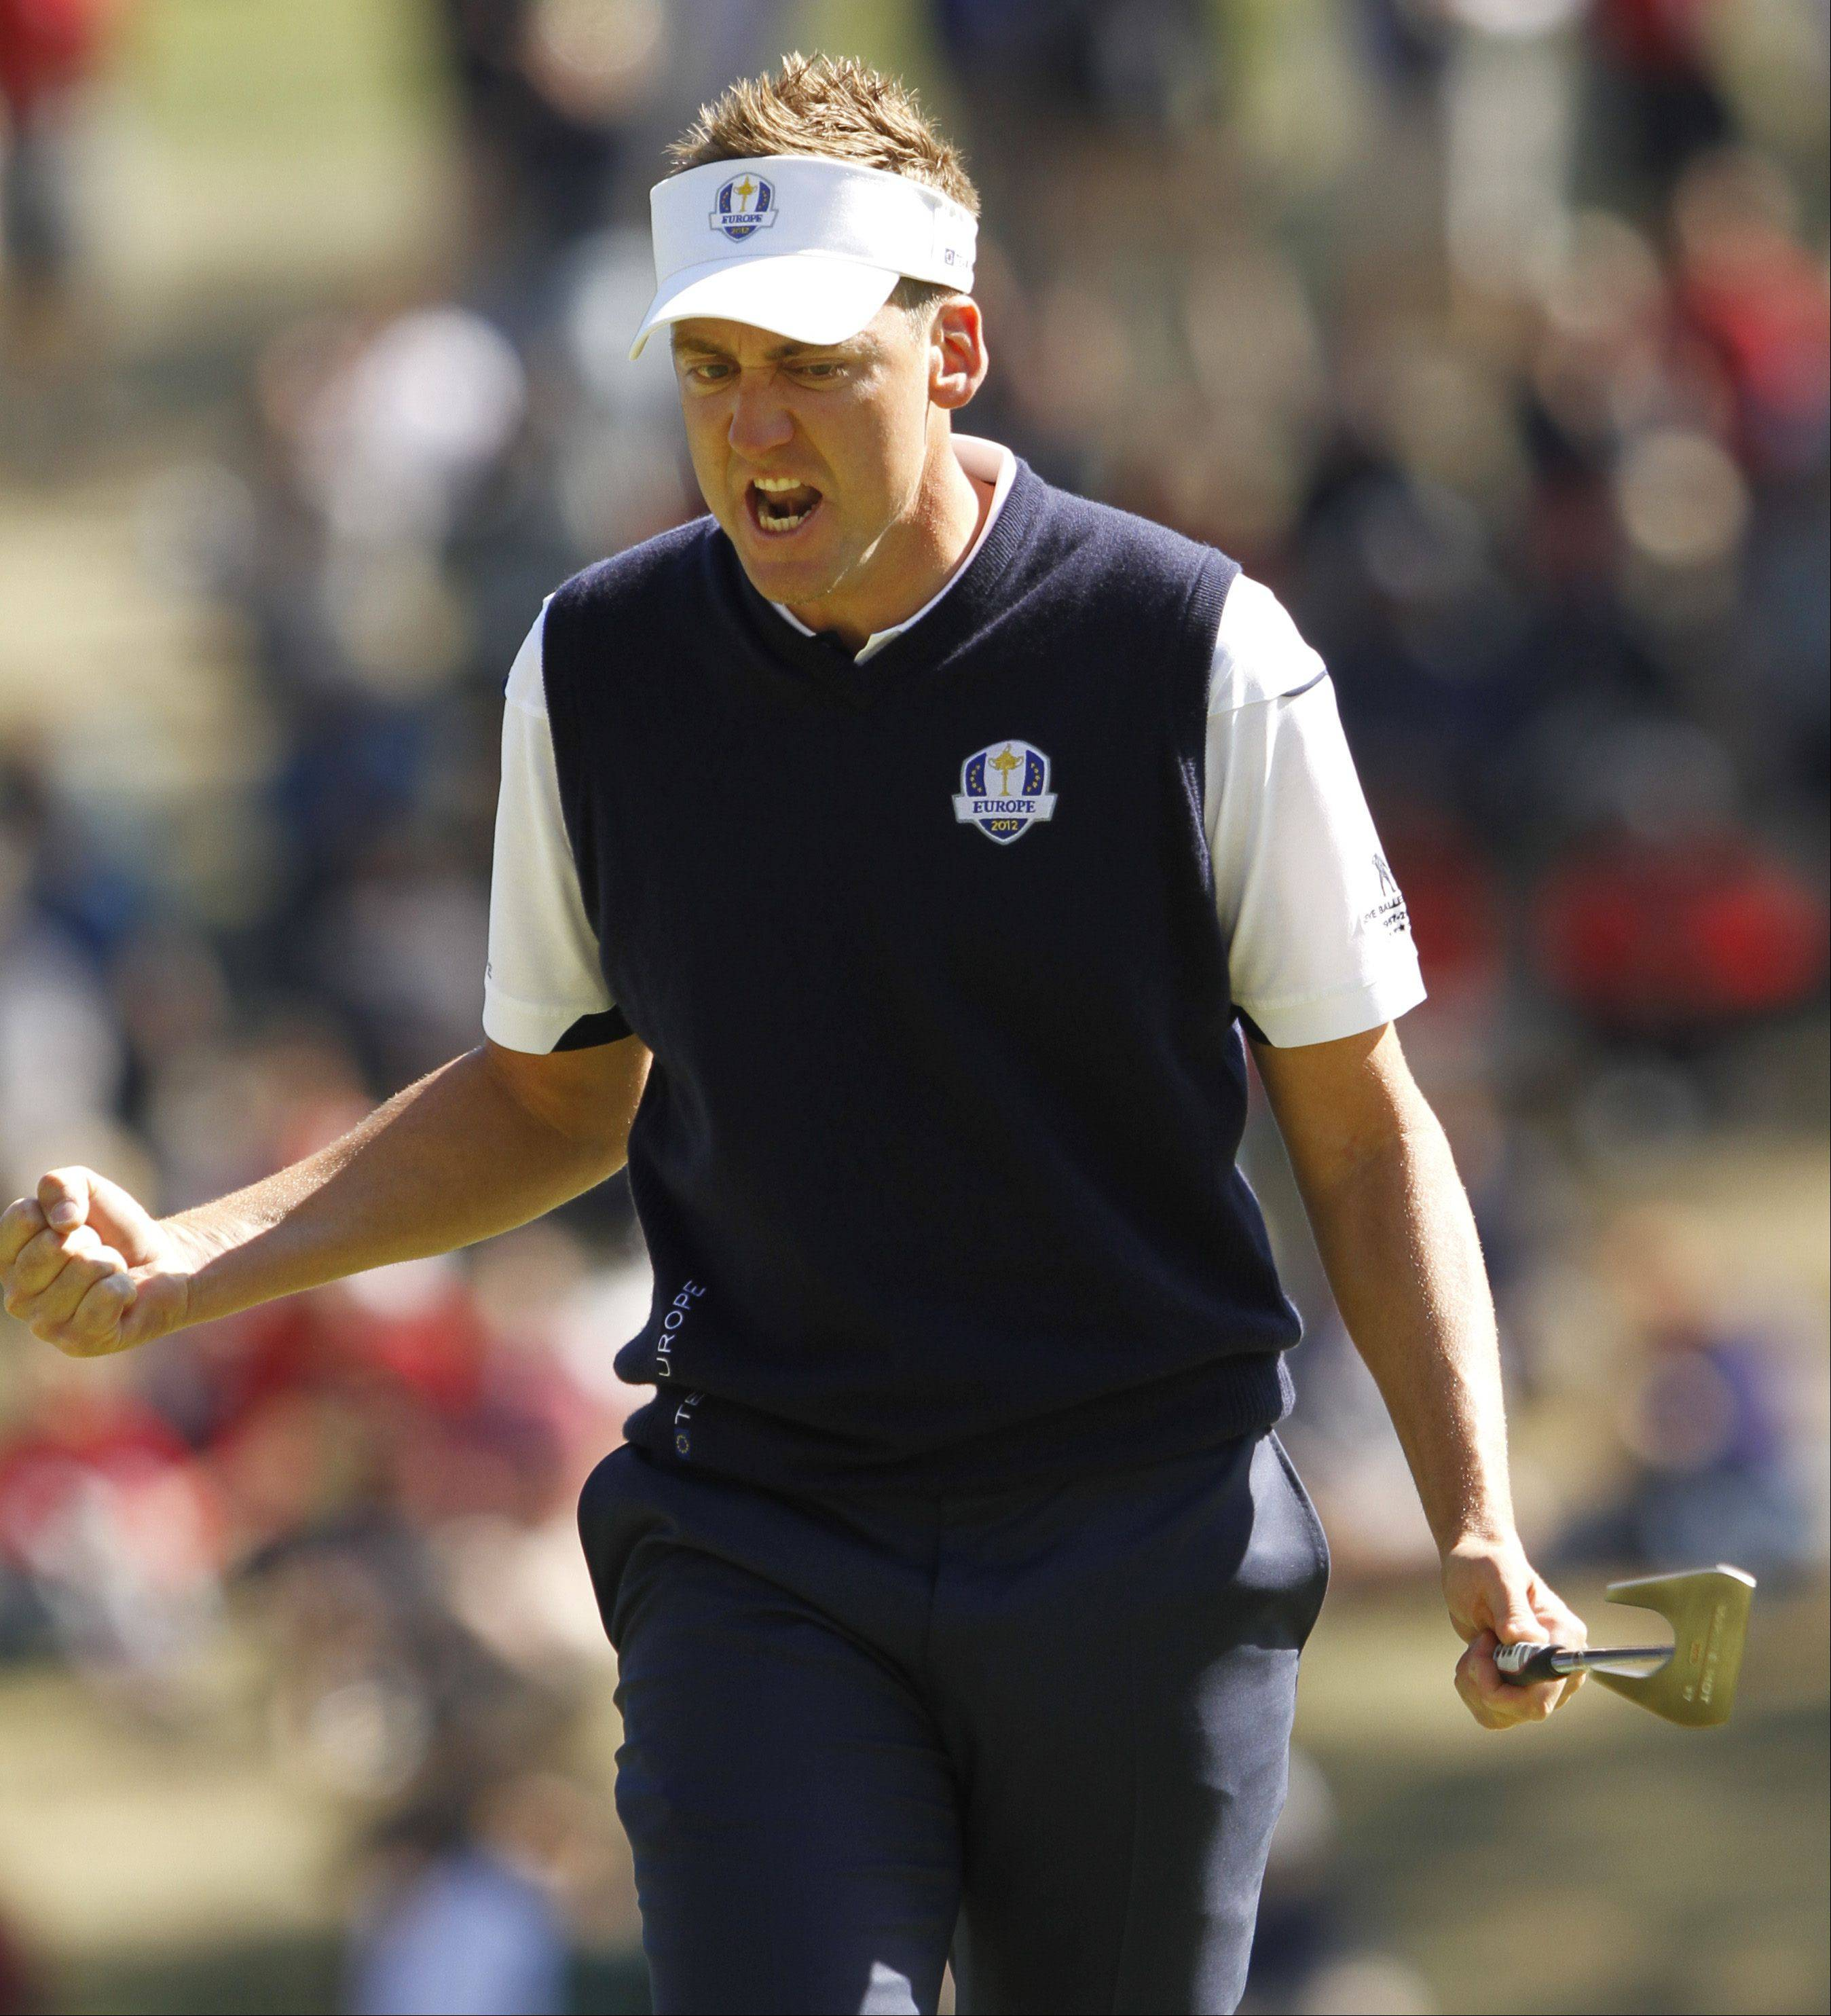 Ian Poulter, who won his singles match against Webb Simpson, gets fired up after making a putt Sunday afternoon.